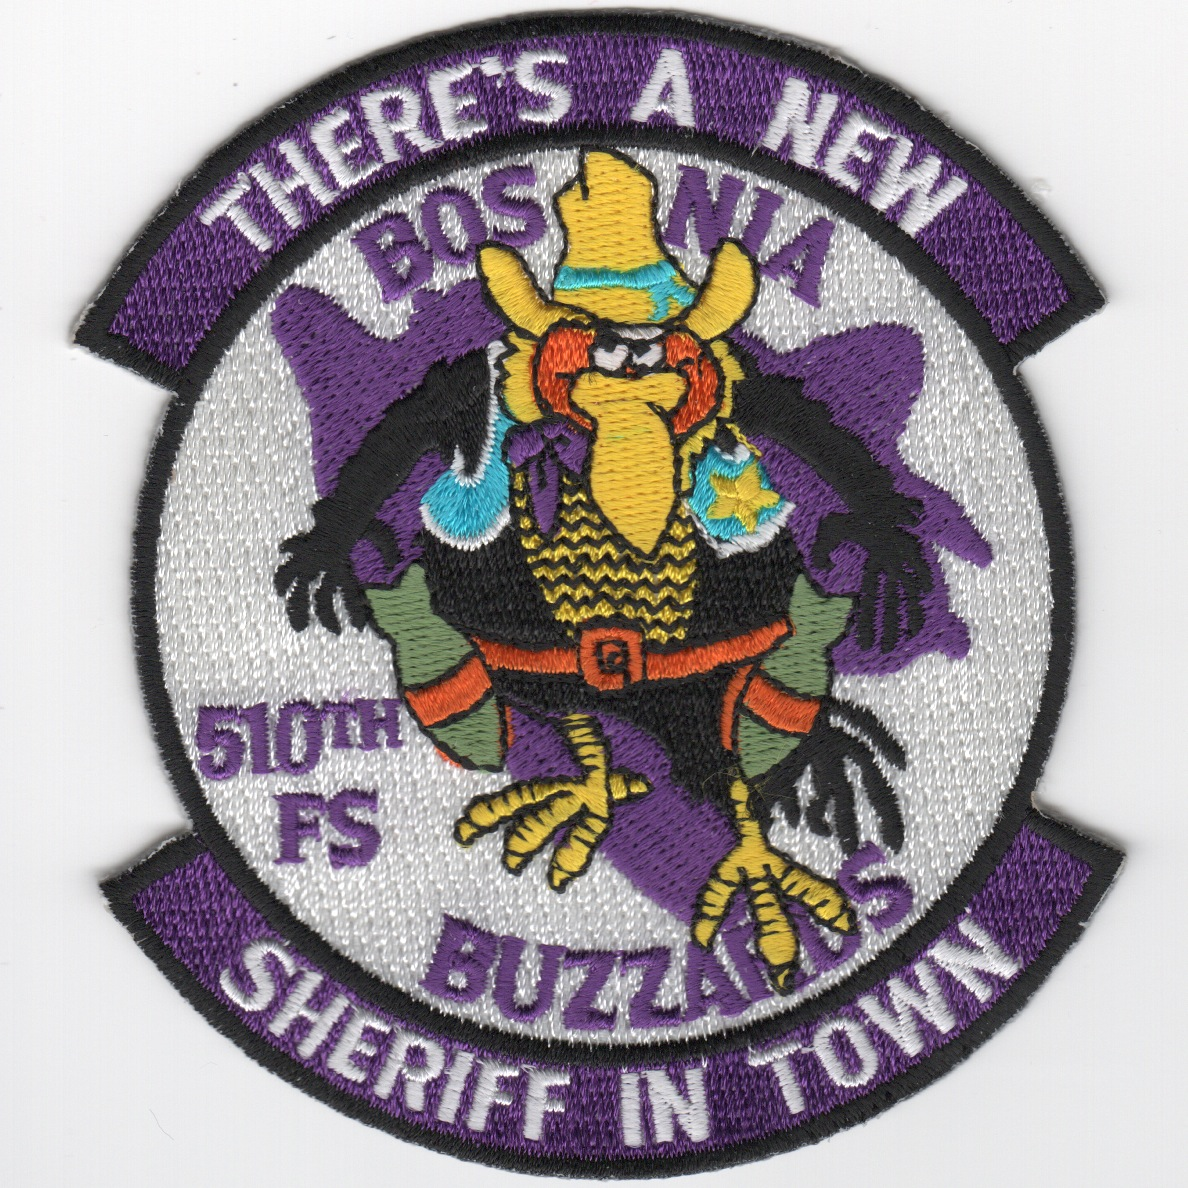 510FS 'New Sheriff In Town' Patch